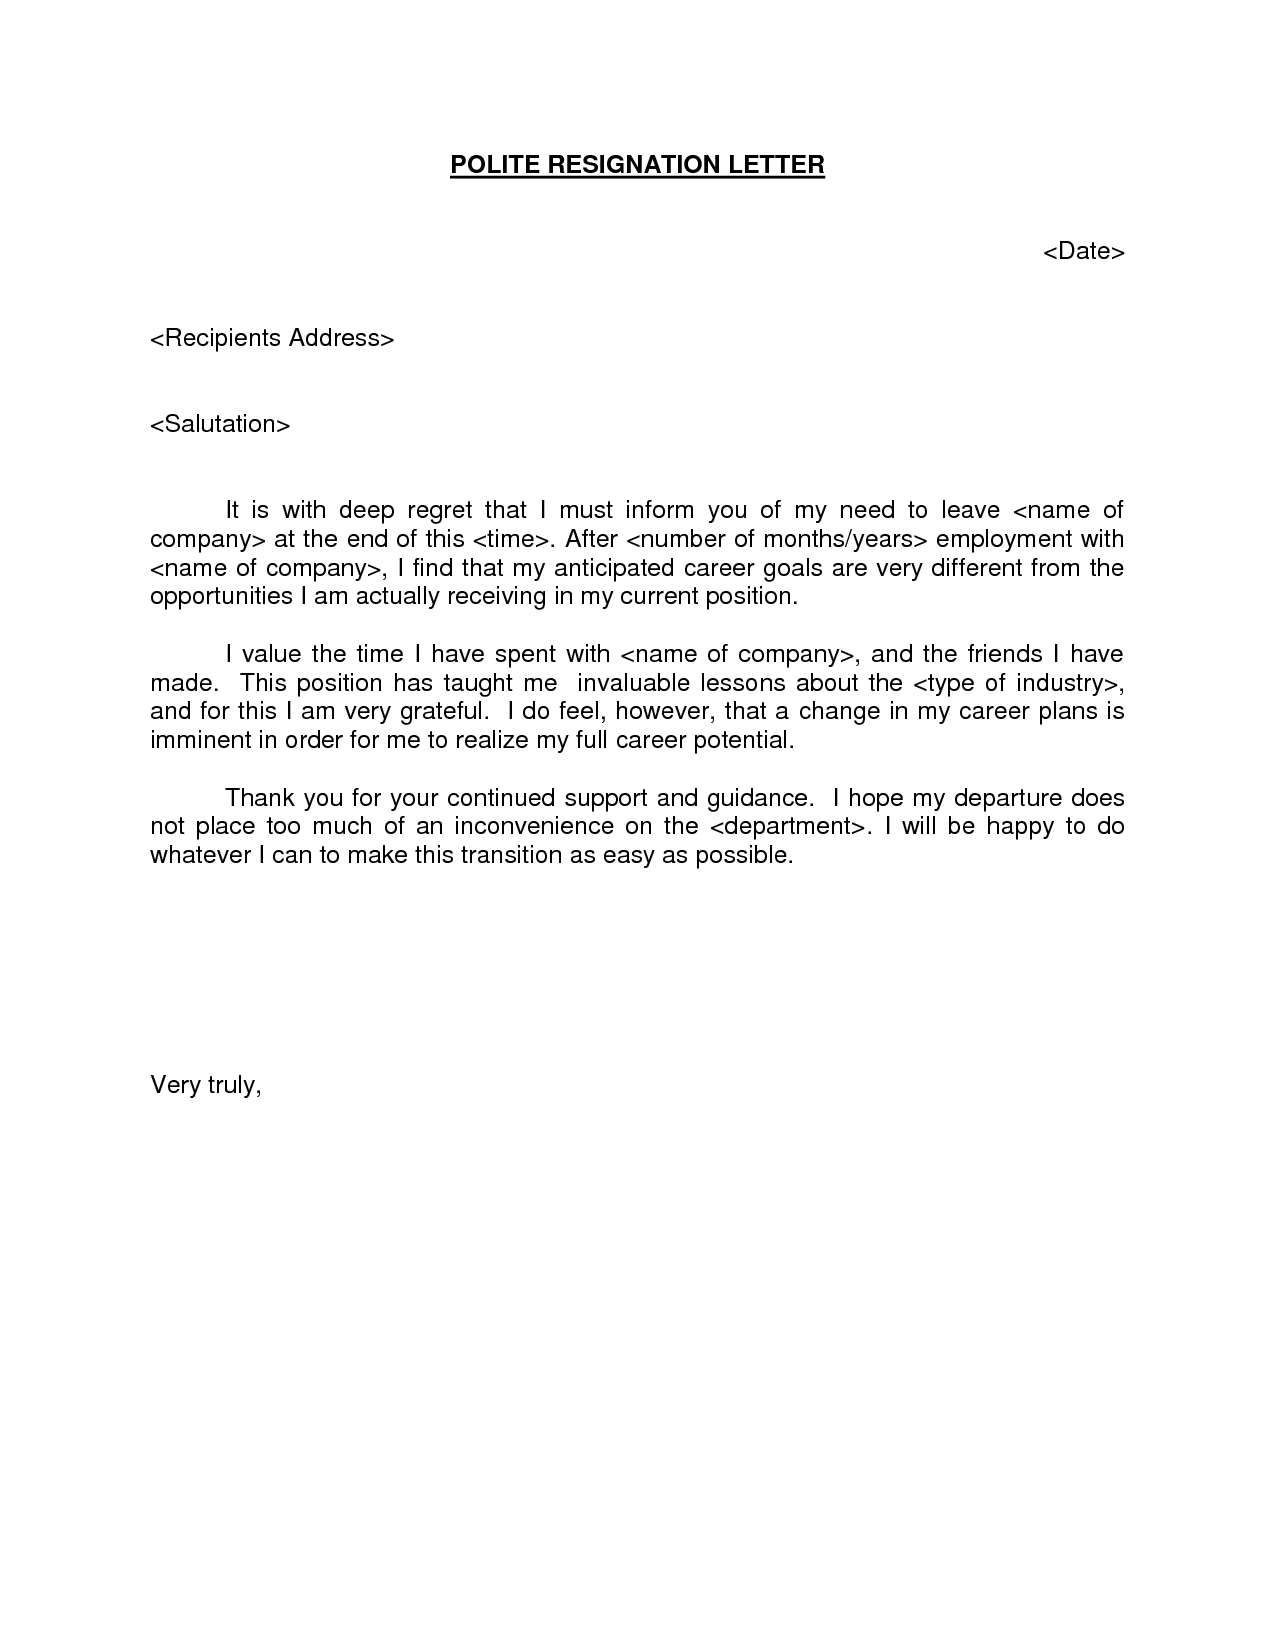 sample resignation letter template example-POLITE RESIGNATION LETTER BestdealformoneyWriting A Letter Resignation Email Letter Sample 18-q